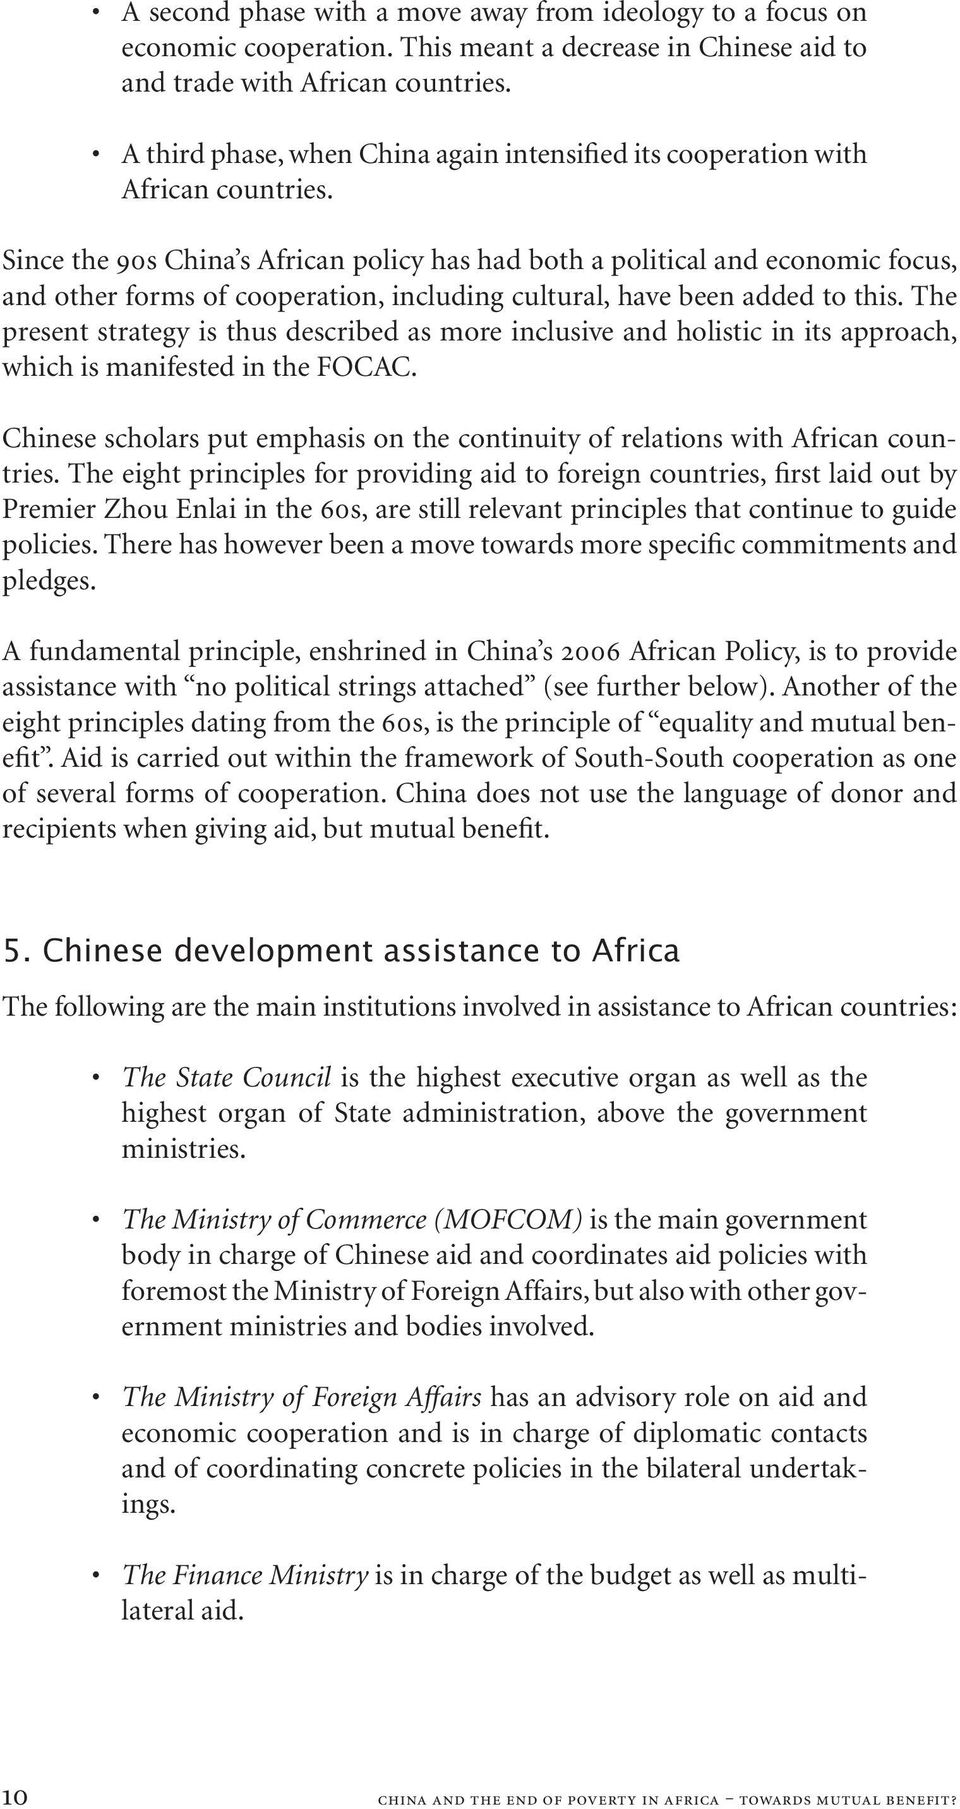 Since the 90s China s African policy has had both a political and economic focus, and other forms of cooperation, including cultural, have been added to this.